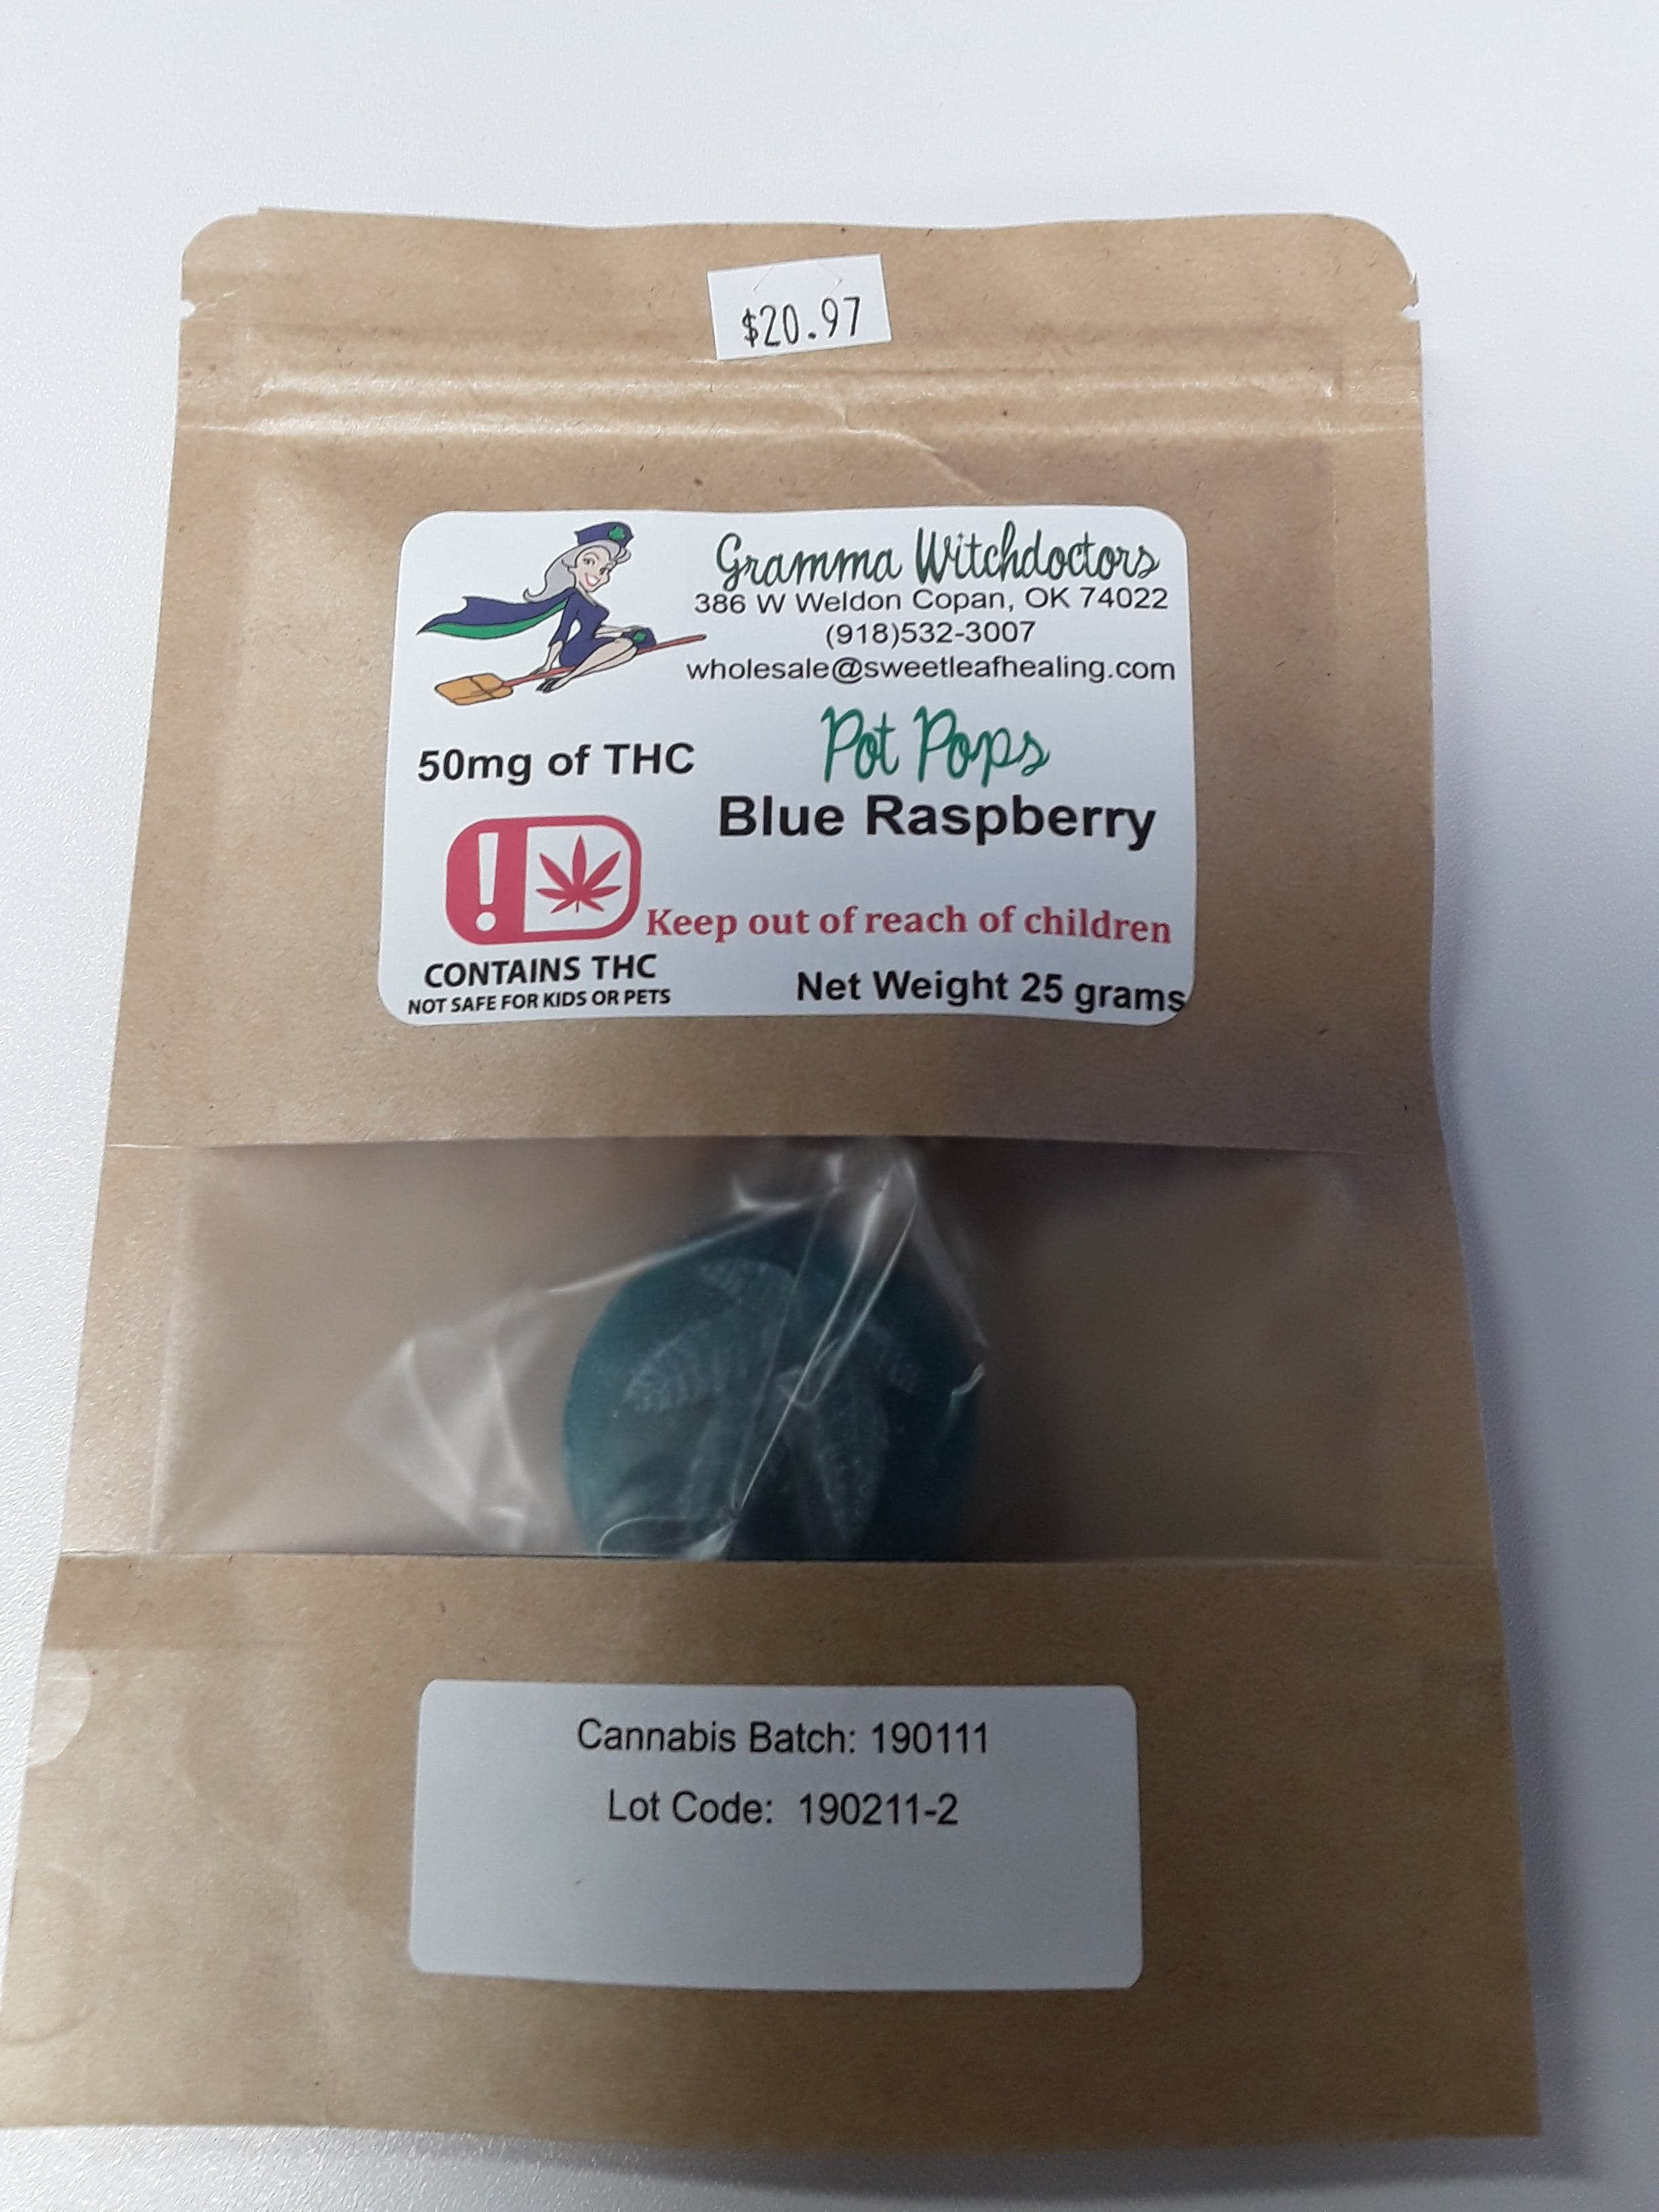 marijuana-dispensaries-minerva-canna-of-grove-in-grove-pot-pops-blue-raspberry